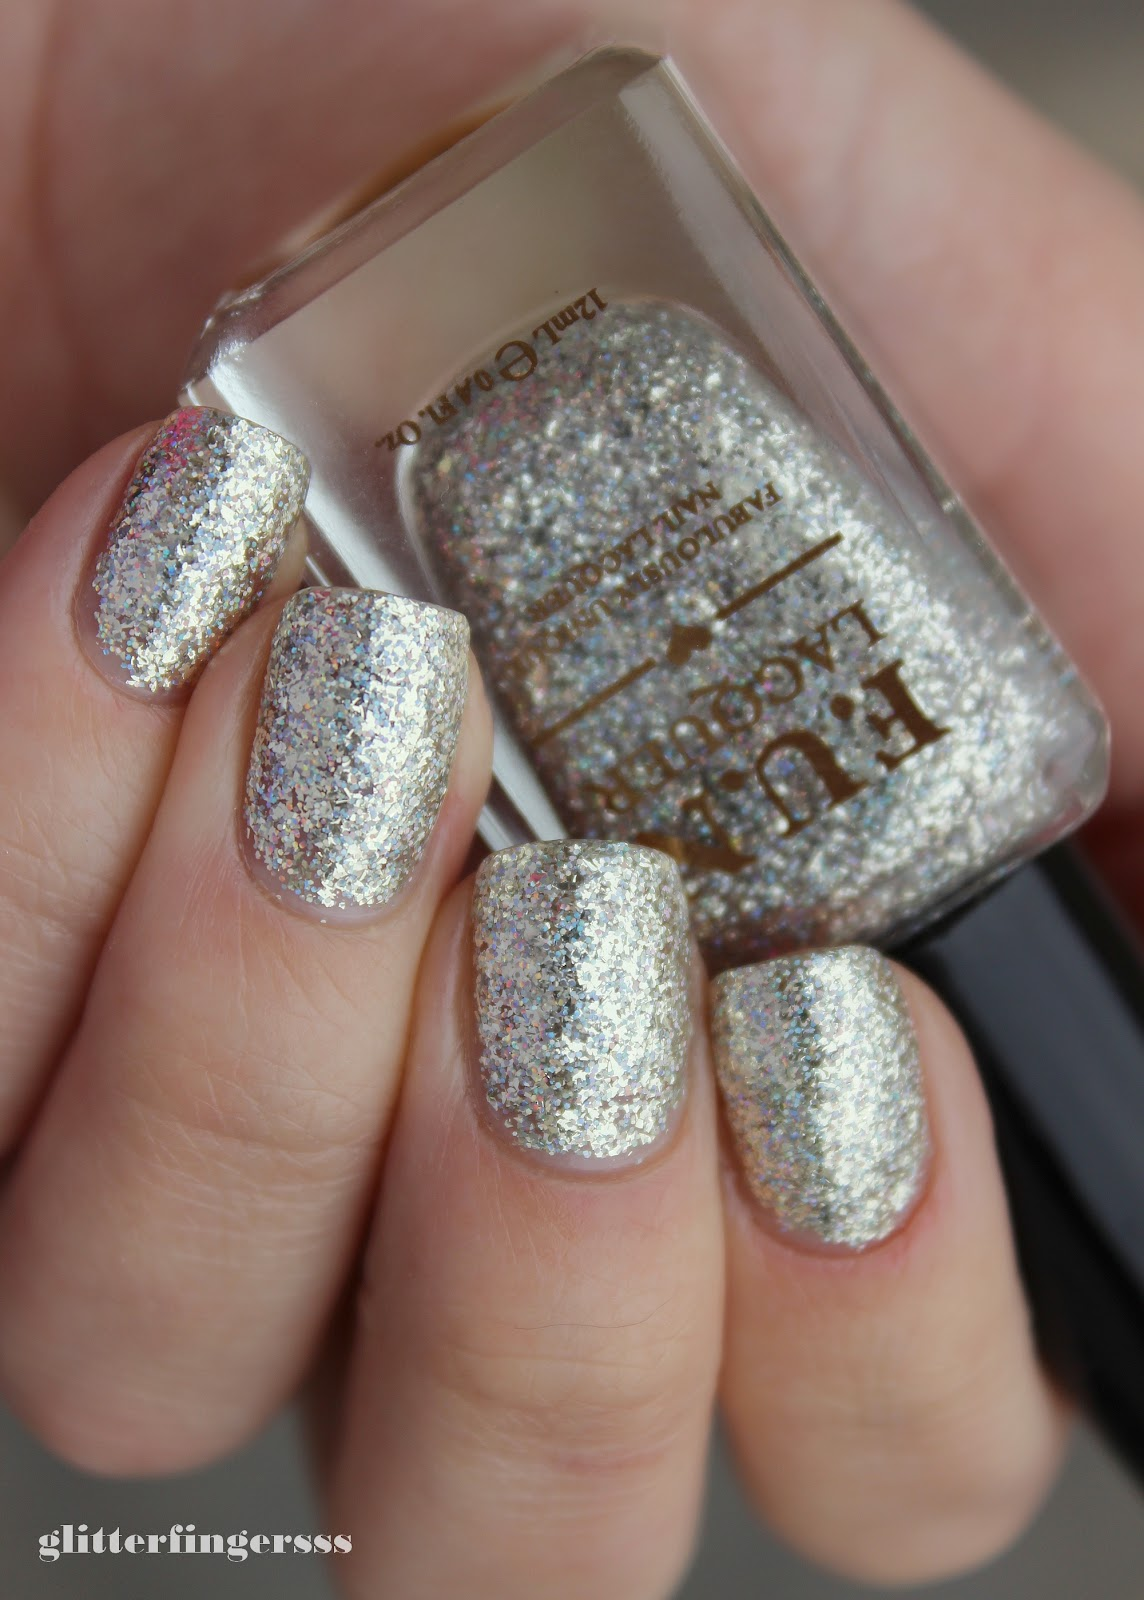 SWATCH | FUN Lacquer - Queen ~ Glitterfingersss in english